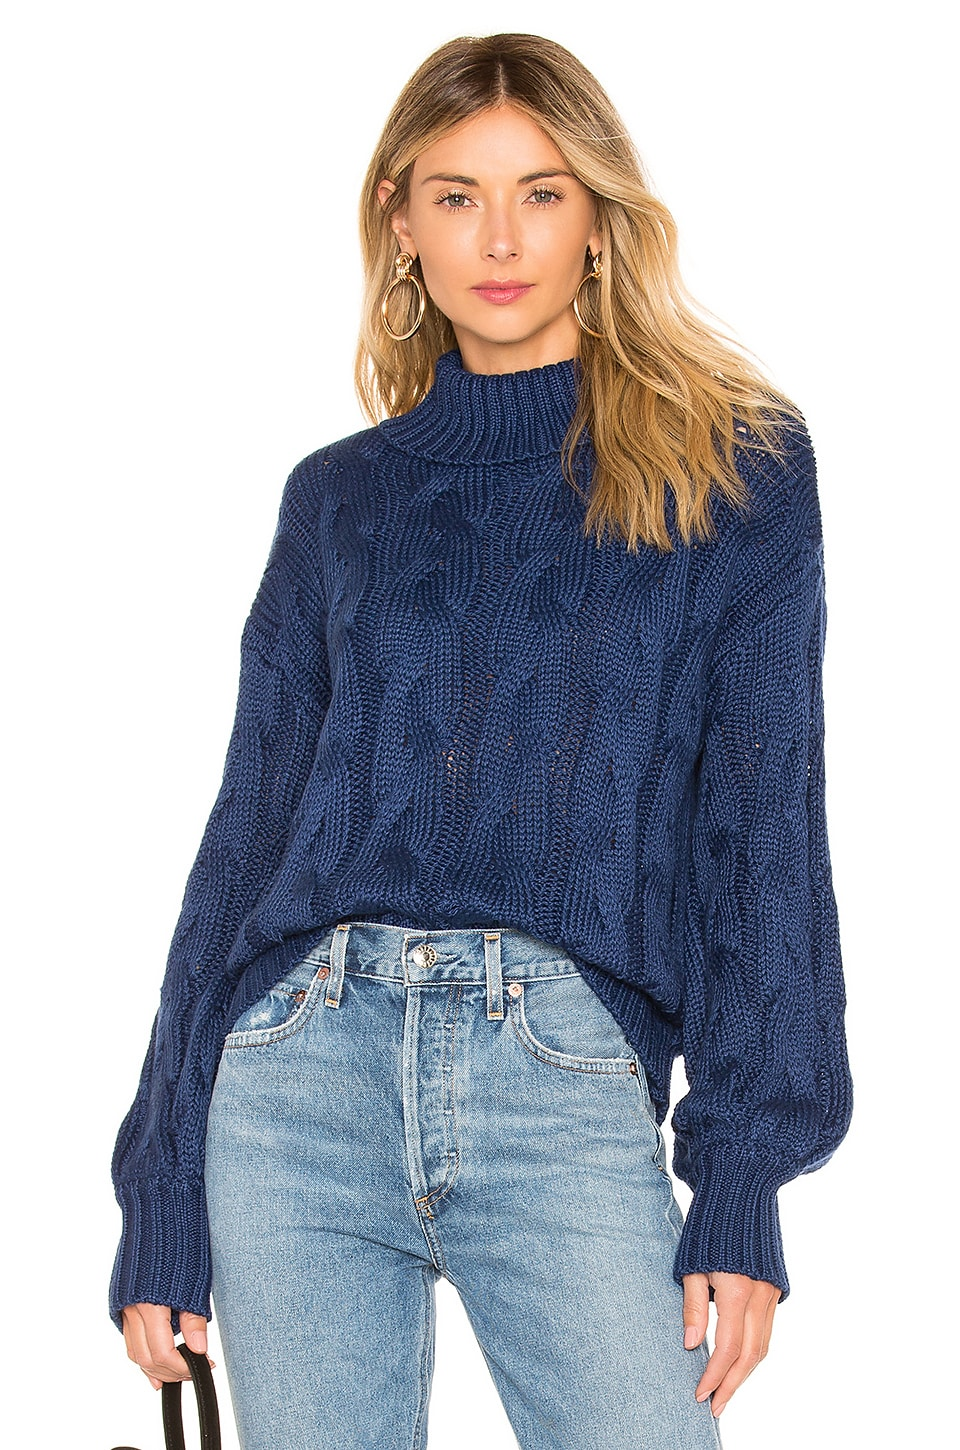 For Love & Lemons Charlotte Turtleneck Sweater in Navy